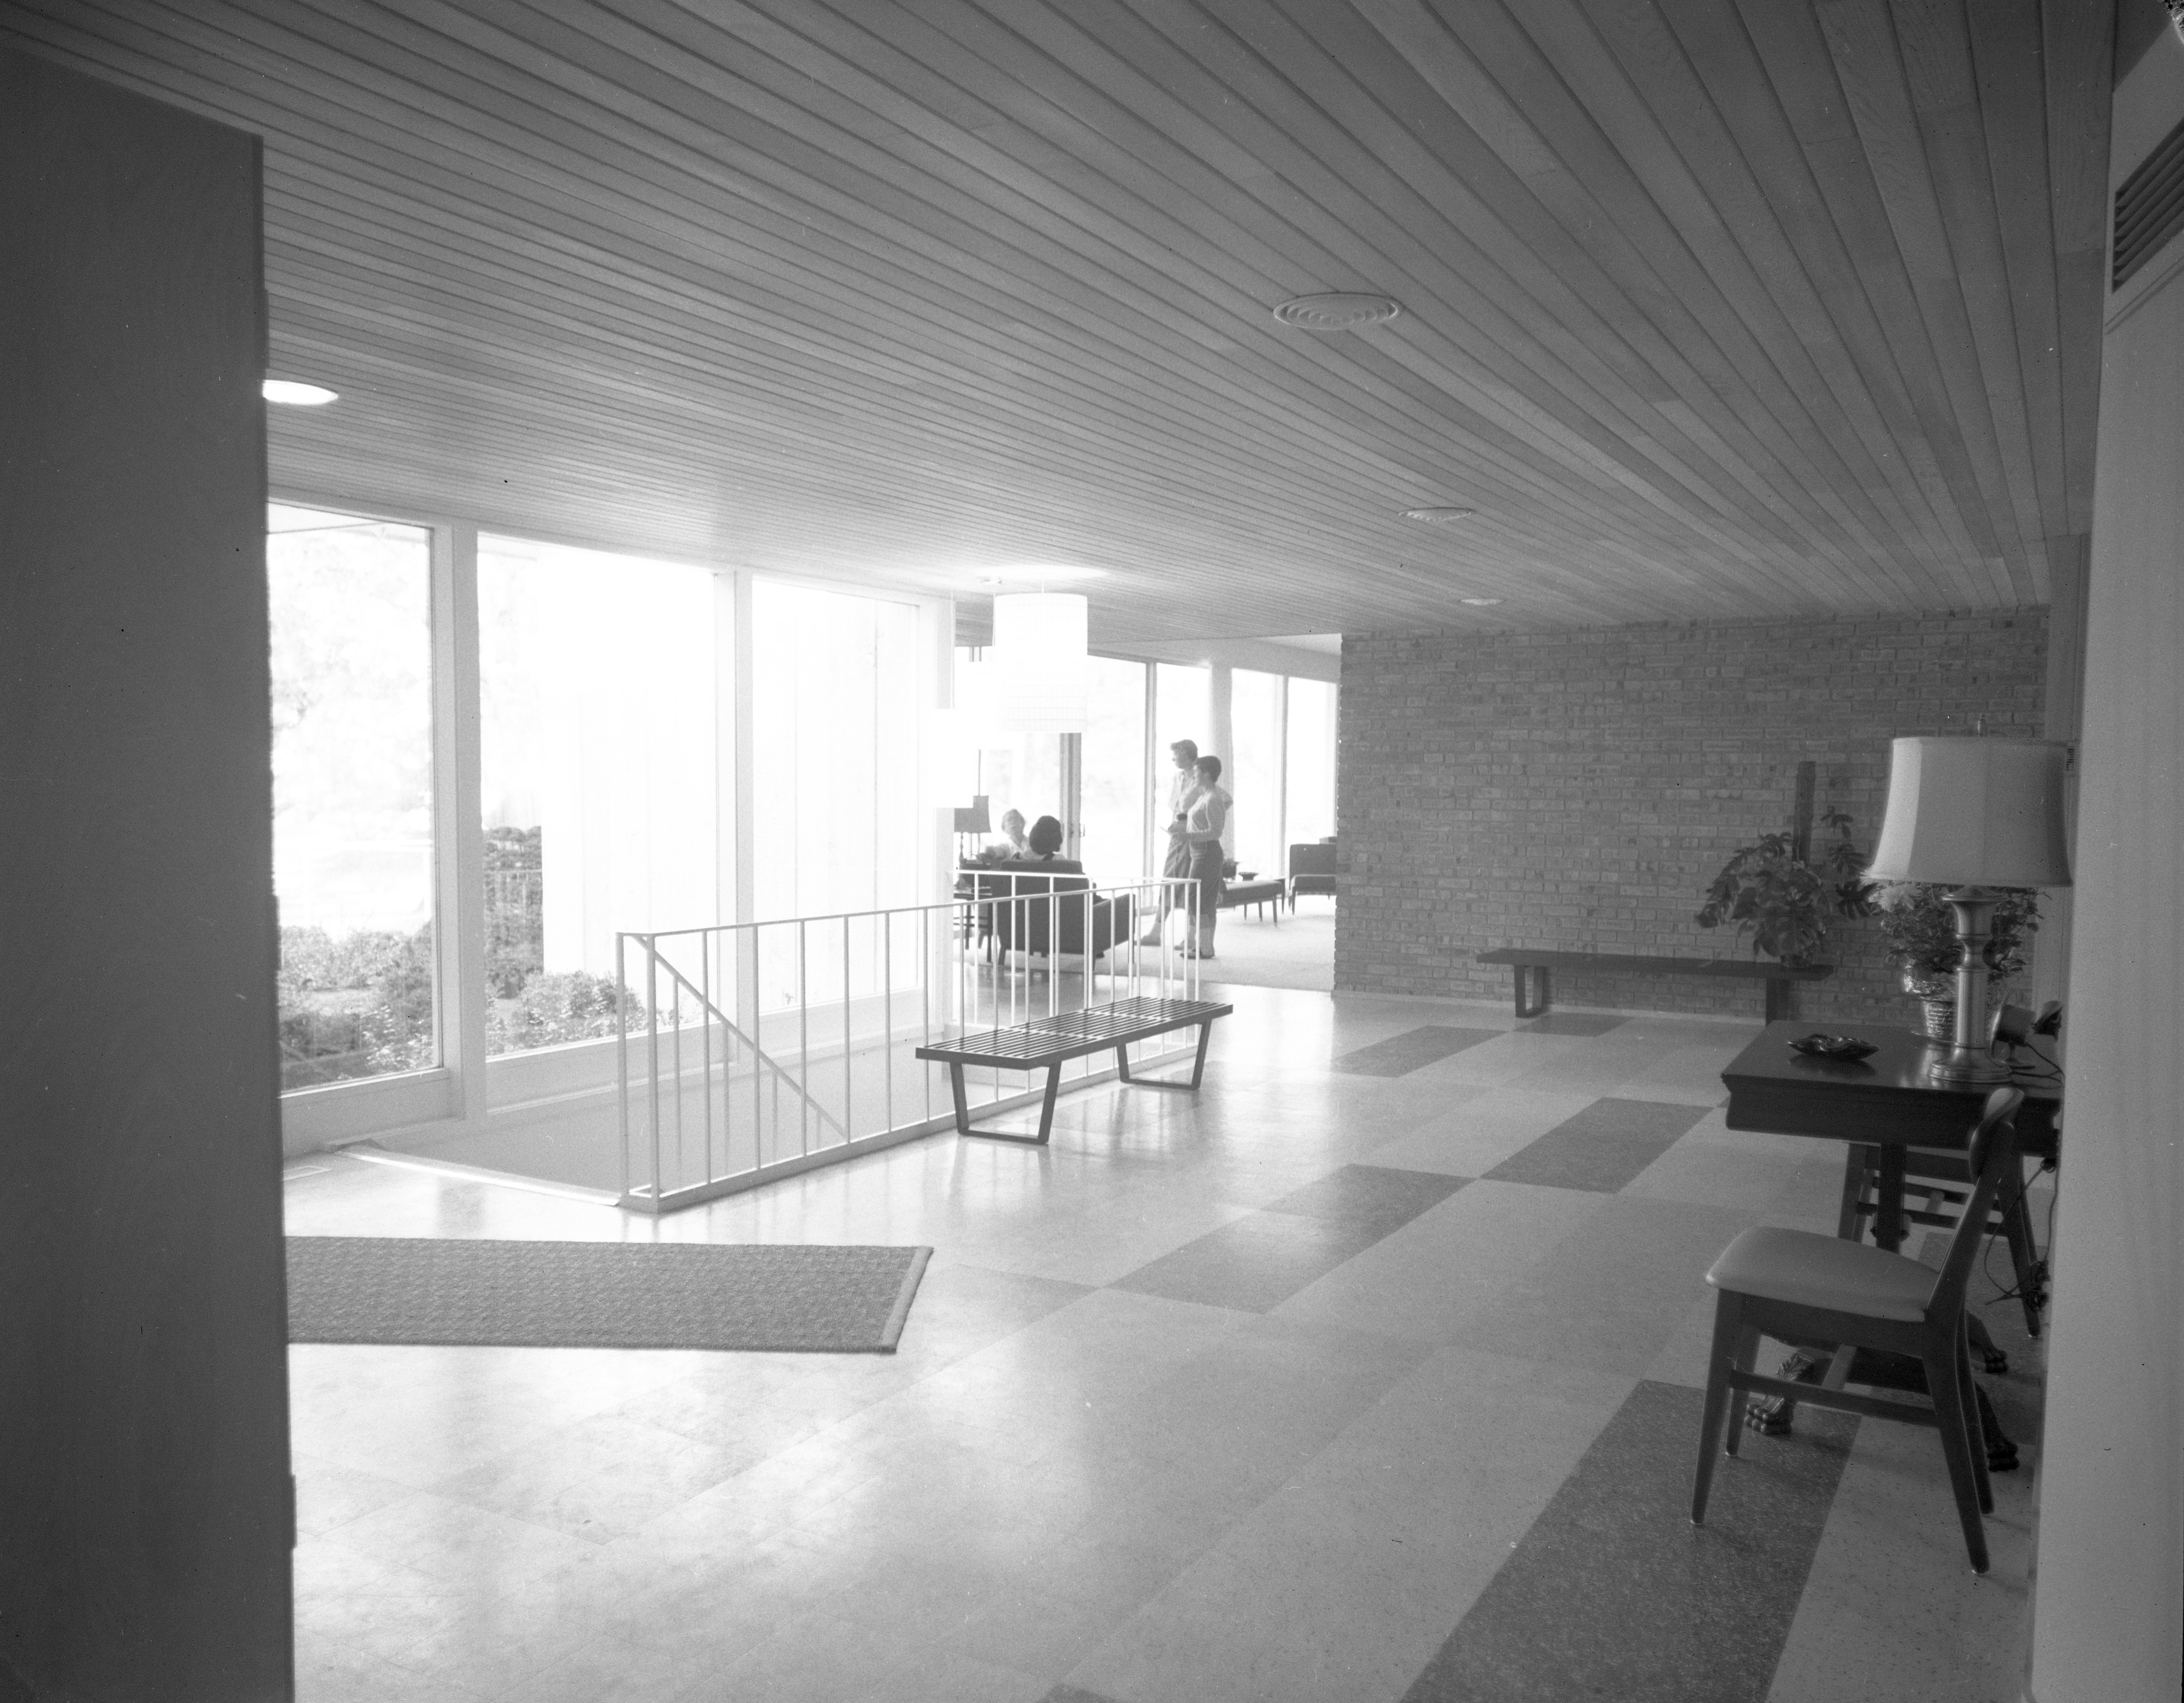 Lobby Filled With Light at New Delta Gamma Sorority House at 1800 Washtenaw Ave., October 1958 image